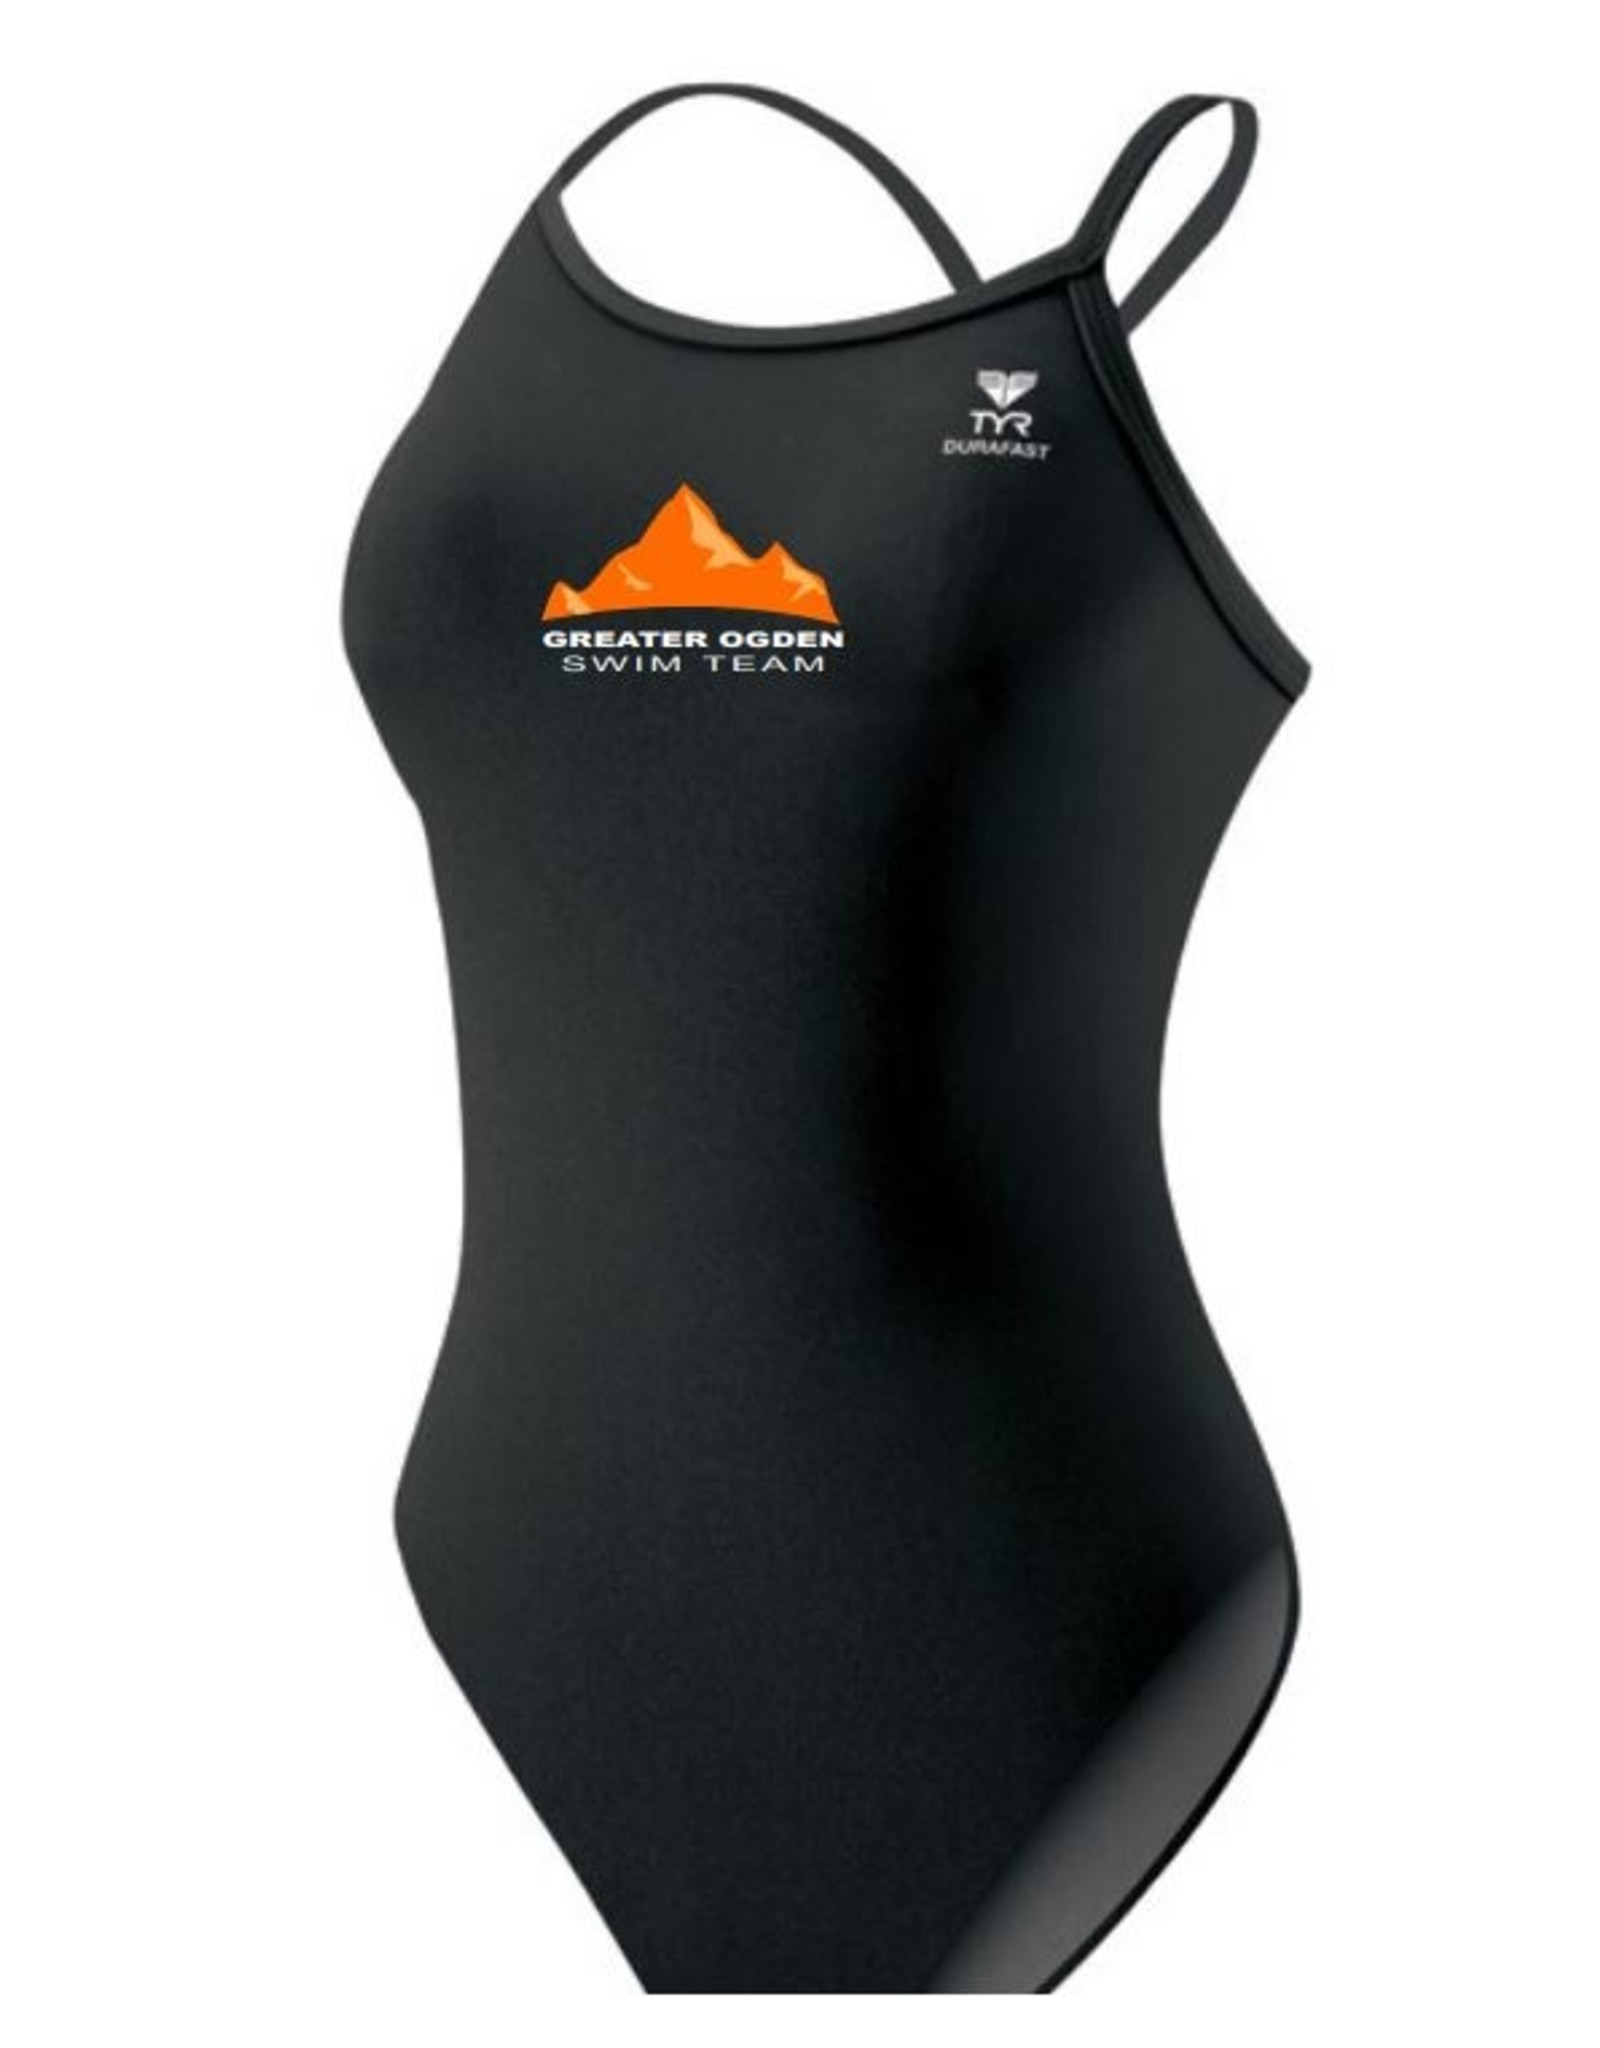 TYR DURAFAST ONE SOLID CUTOUTFIT + GREATER OGDEN LOGO